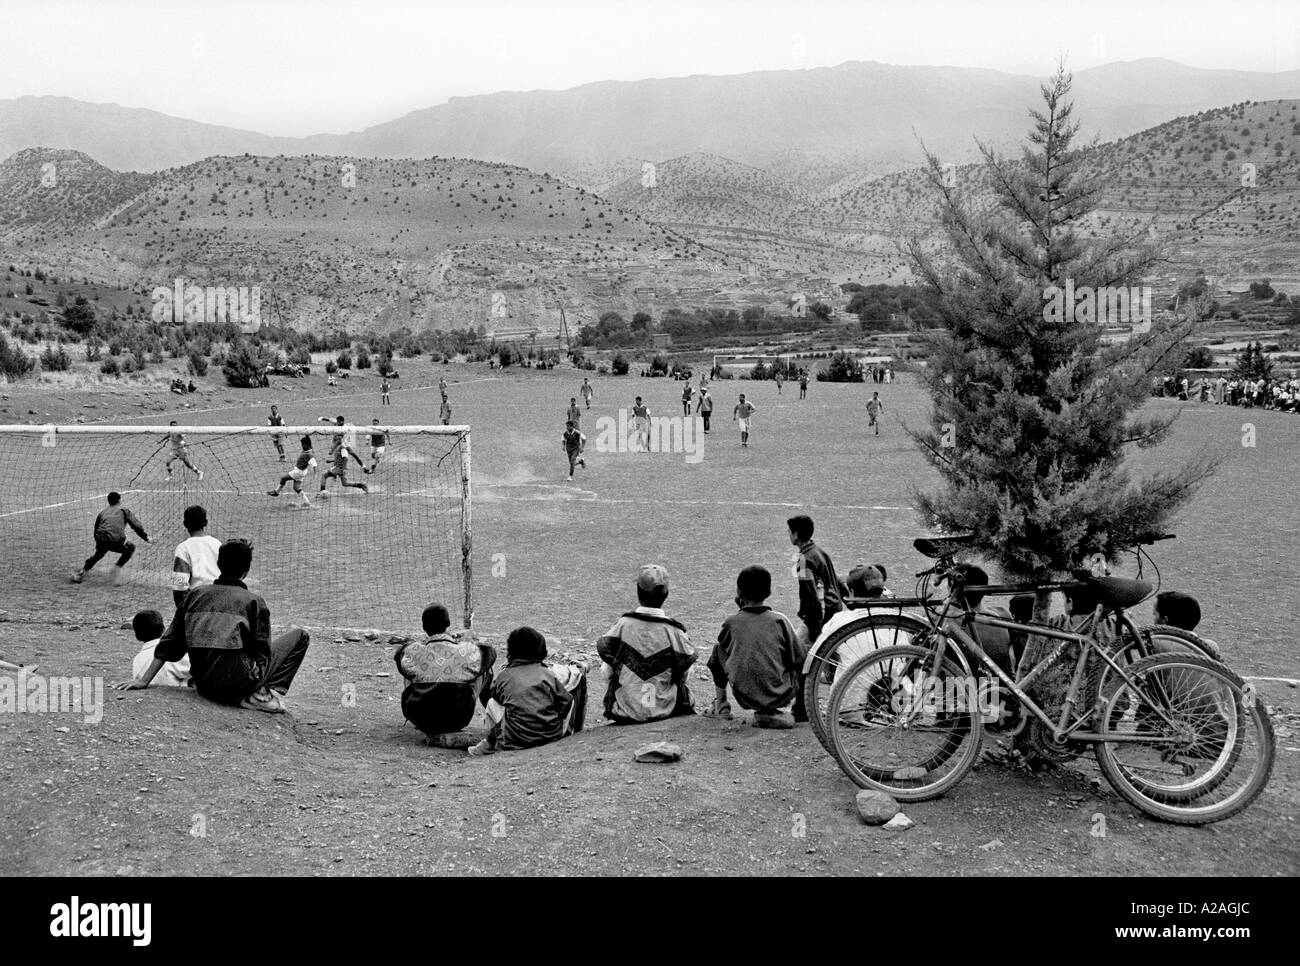 Seamless Vinyl Photography Backdrop Football Stadium Match: Soccer Pitch Black And White Stock Photos & Images